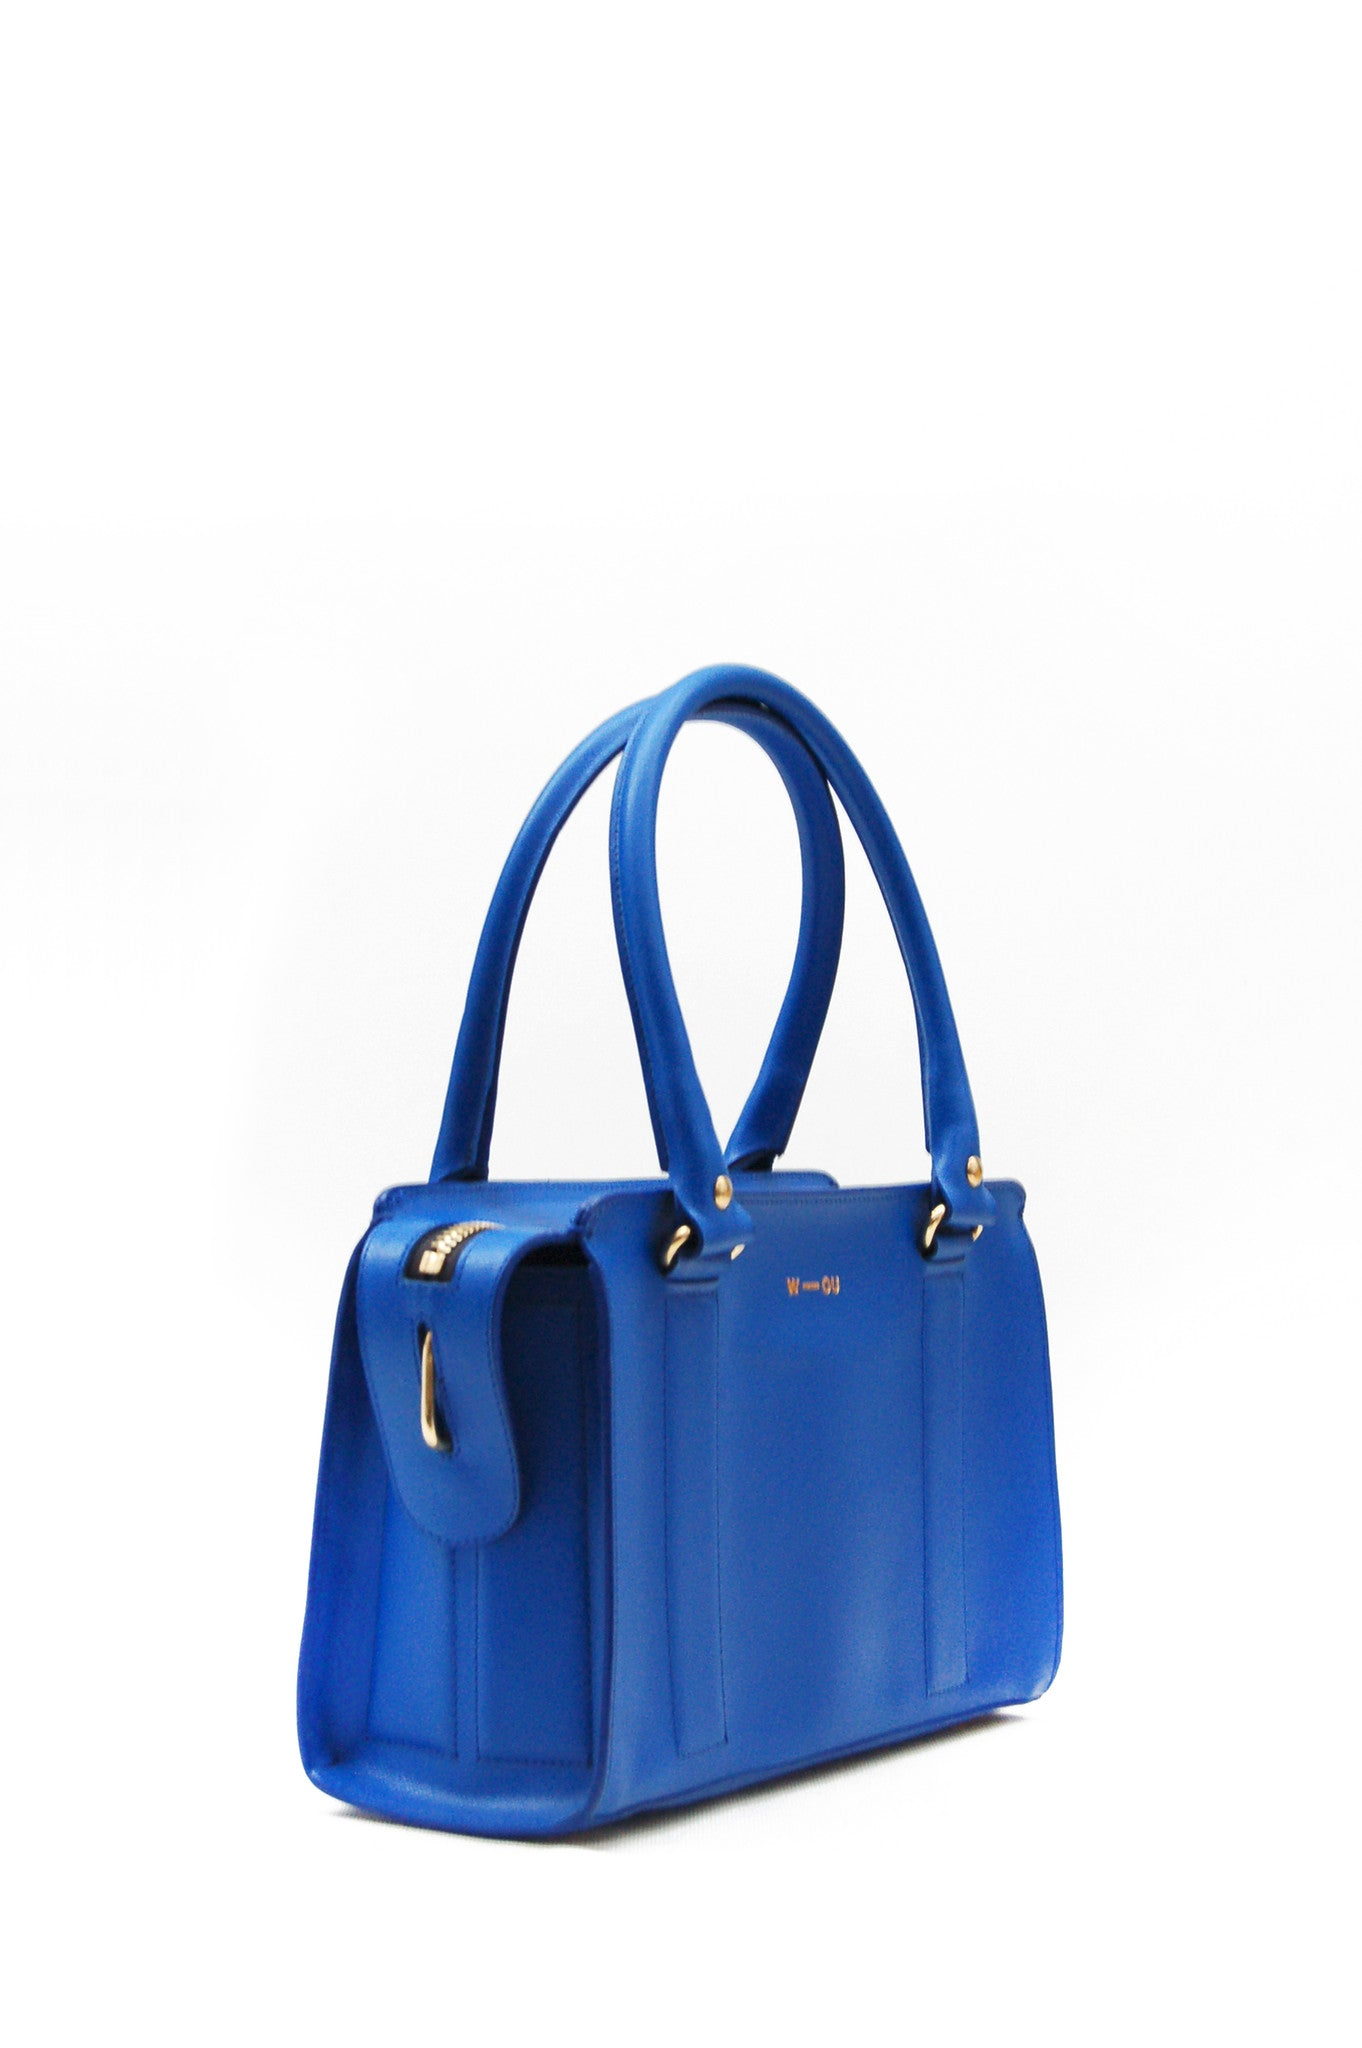 Wendee Ou: Austen structured bag blue | Bags > Totes,Bags -  Hiphunters Shop